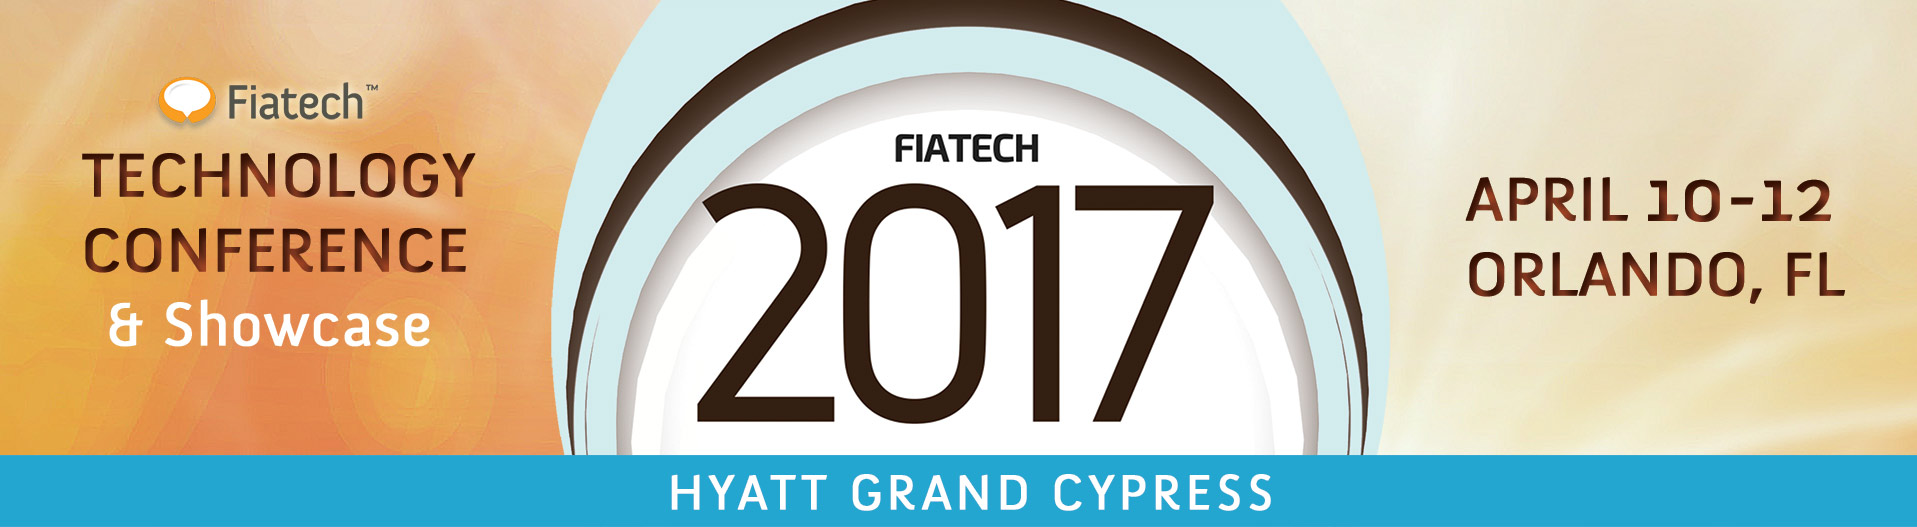 Fiatech 2017 Technology Conference & Showcase